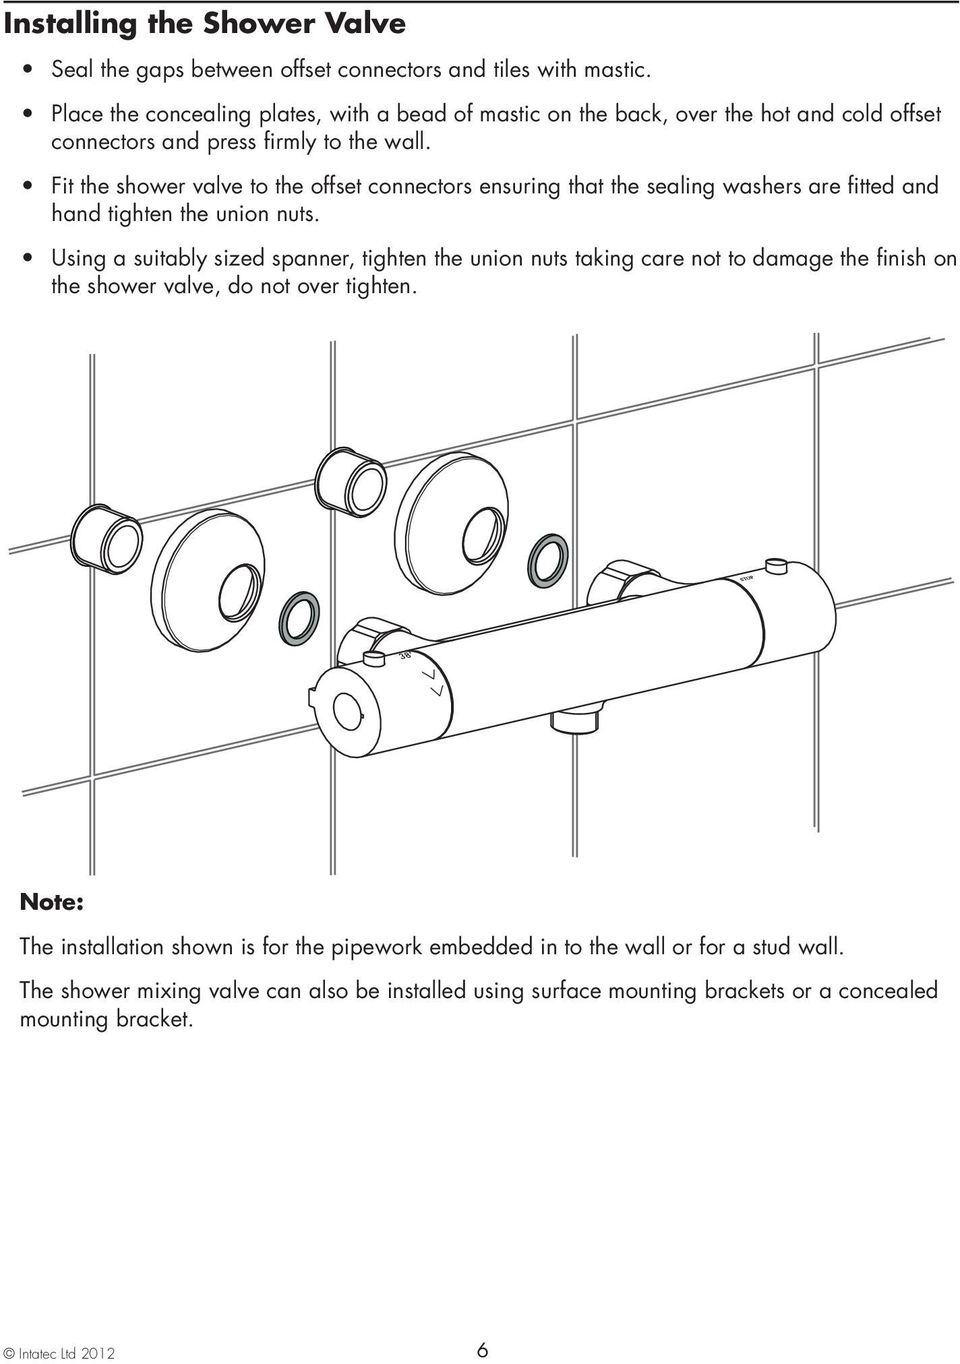 Coolflo Safe Touch Shower Mixing Valve St20015cp Pdf Diagram Fit The To Offset Connectors Ensuring That Sealing Washers Are Fitted And